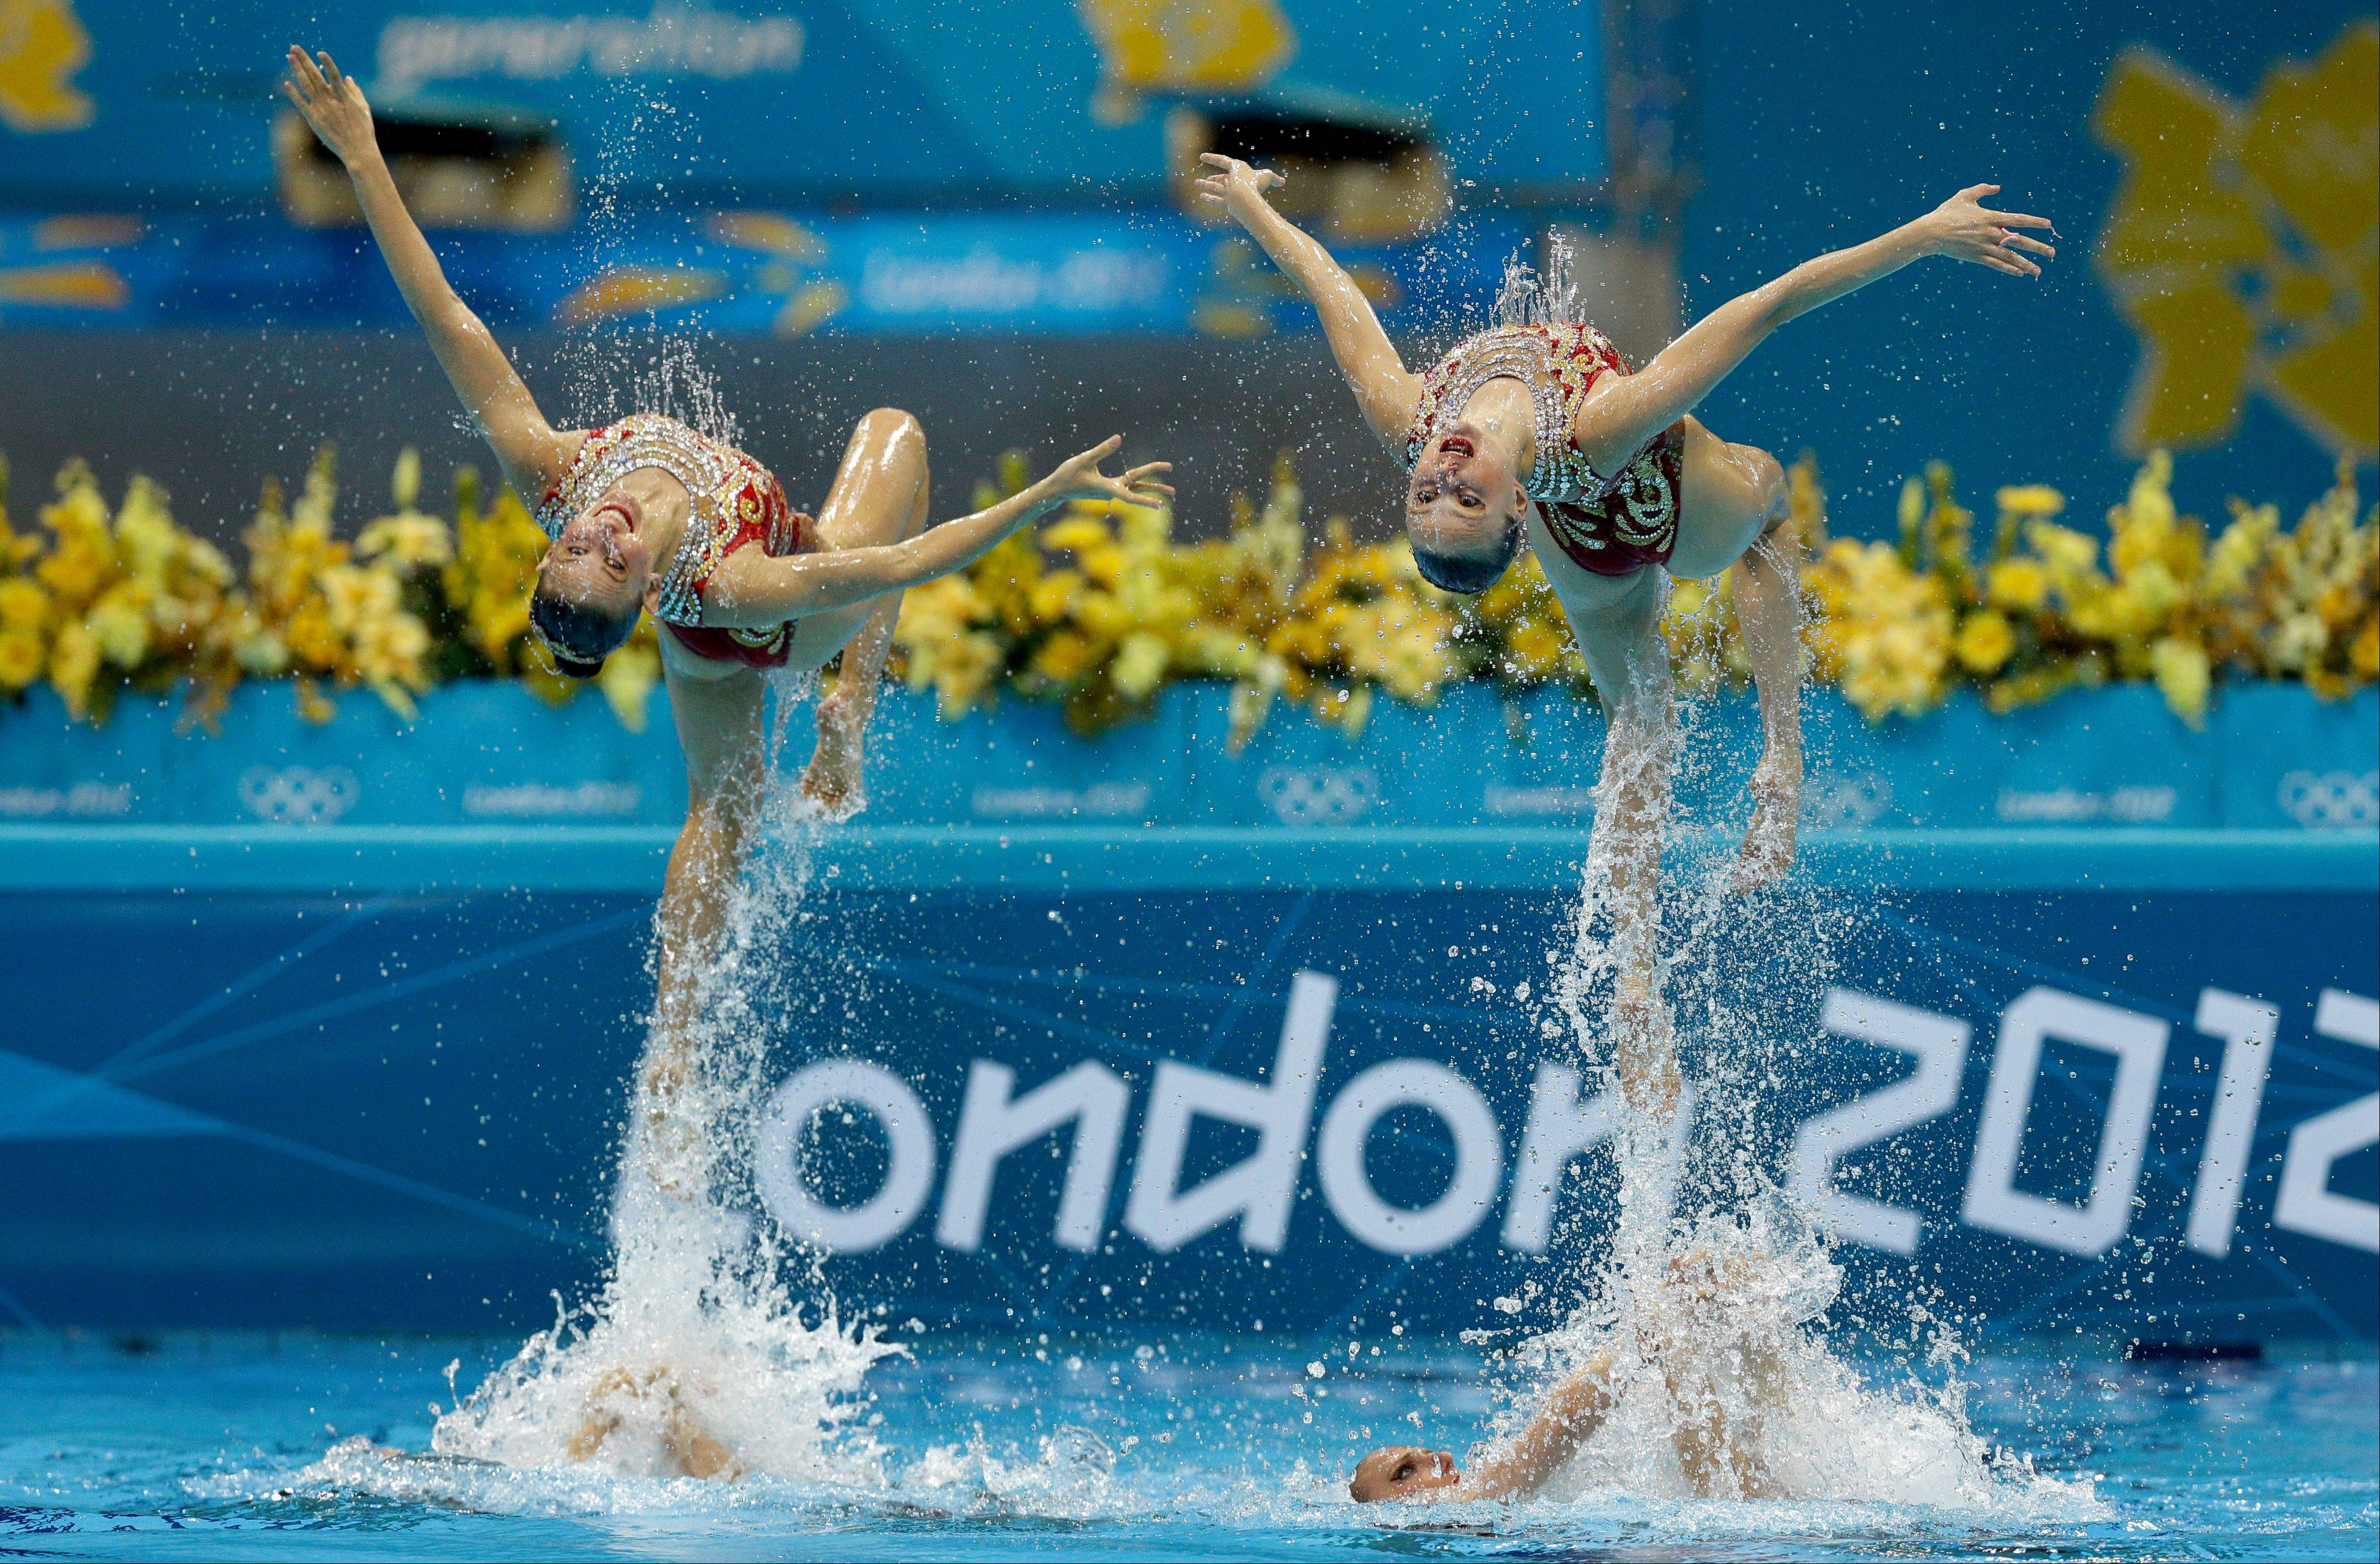 Members of the team of Russia are thrown up in the air during the women's team synchronized swimming technical routine at the Aquatics Centre in the Olympic Park during the 2012 Summer Olympics in London, Thursday, Aug. 9, 2012.